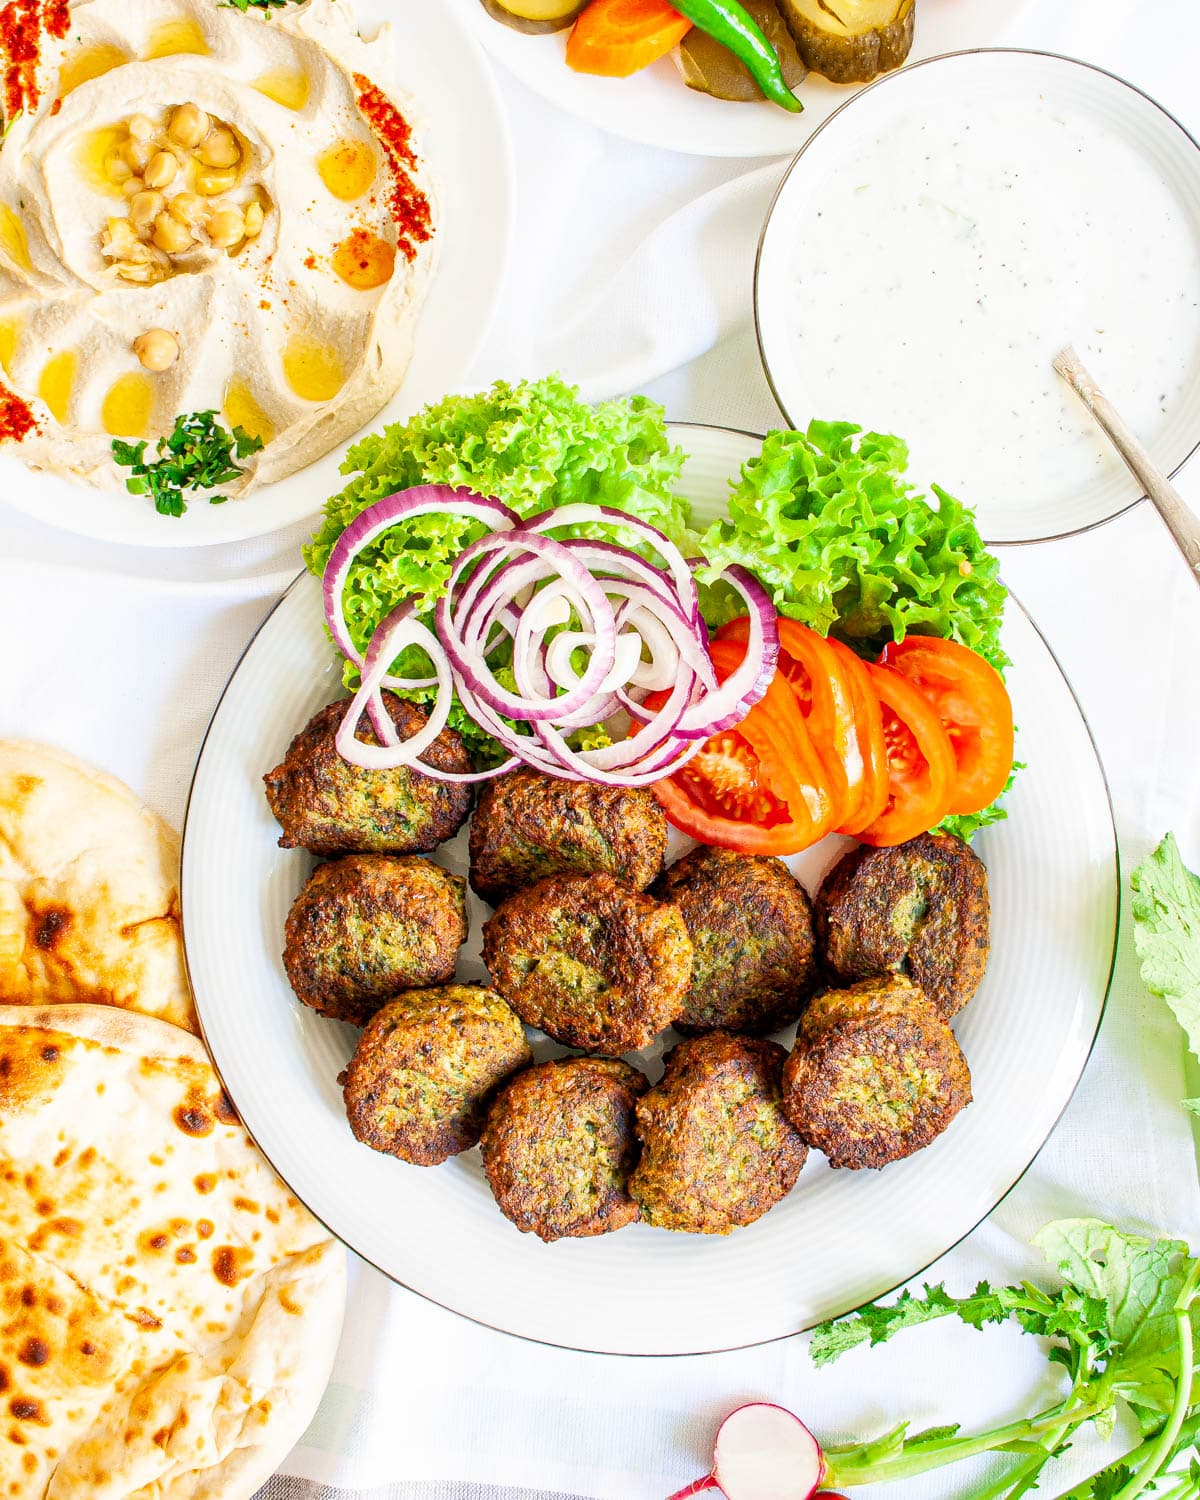 falafel on a white plate with tomato slices, onions and lettuce